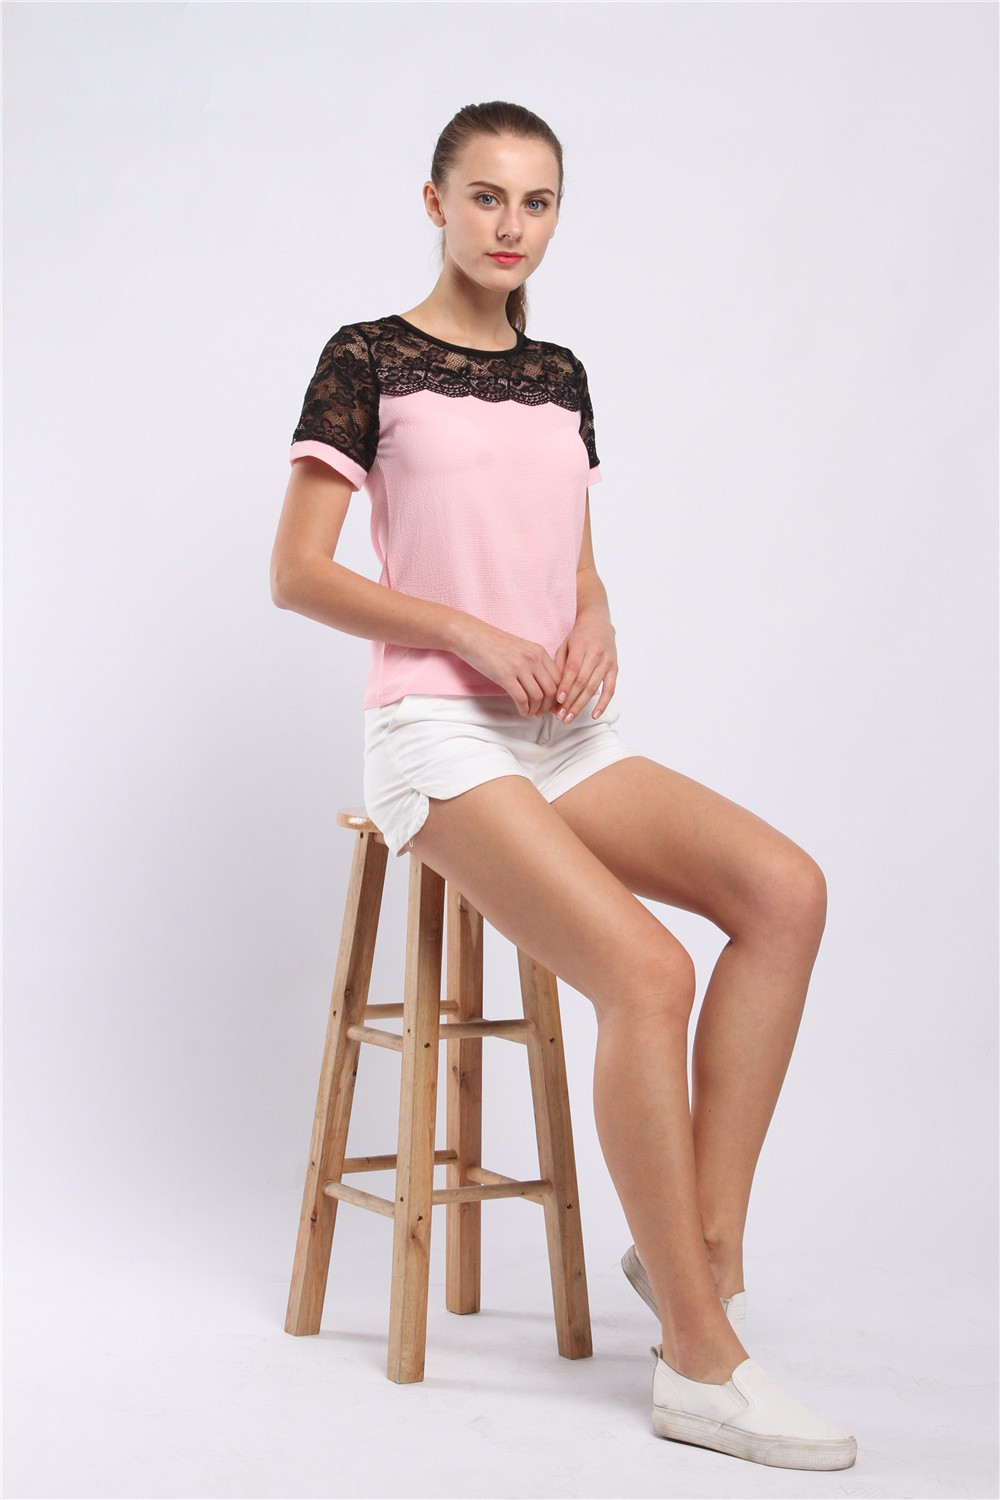 Women Blouses Summer Lace Chiffon Blouse Casual Blusa Feminina Tops Fashion Chemise Femme Shirts Plus Size 5XL Red White Pink 21